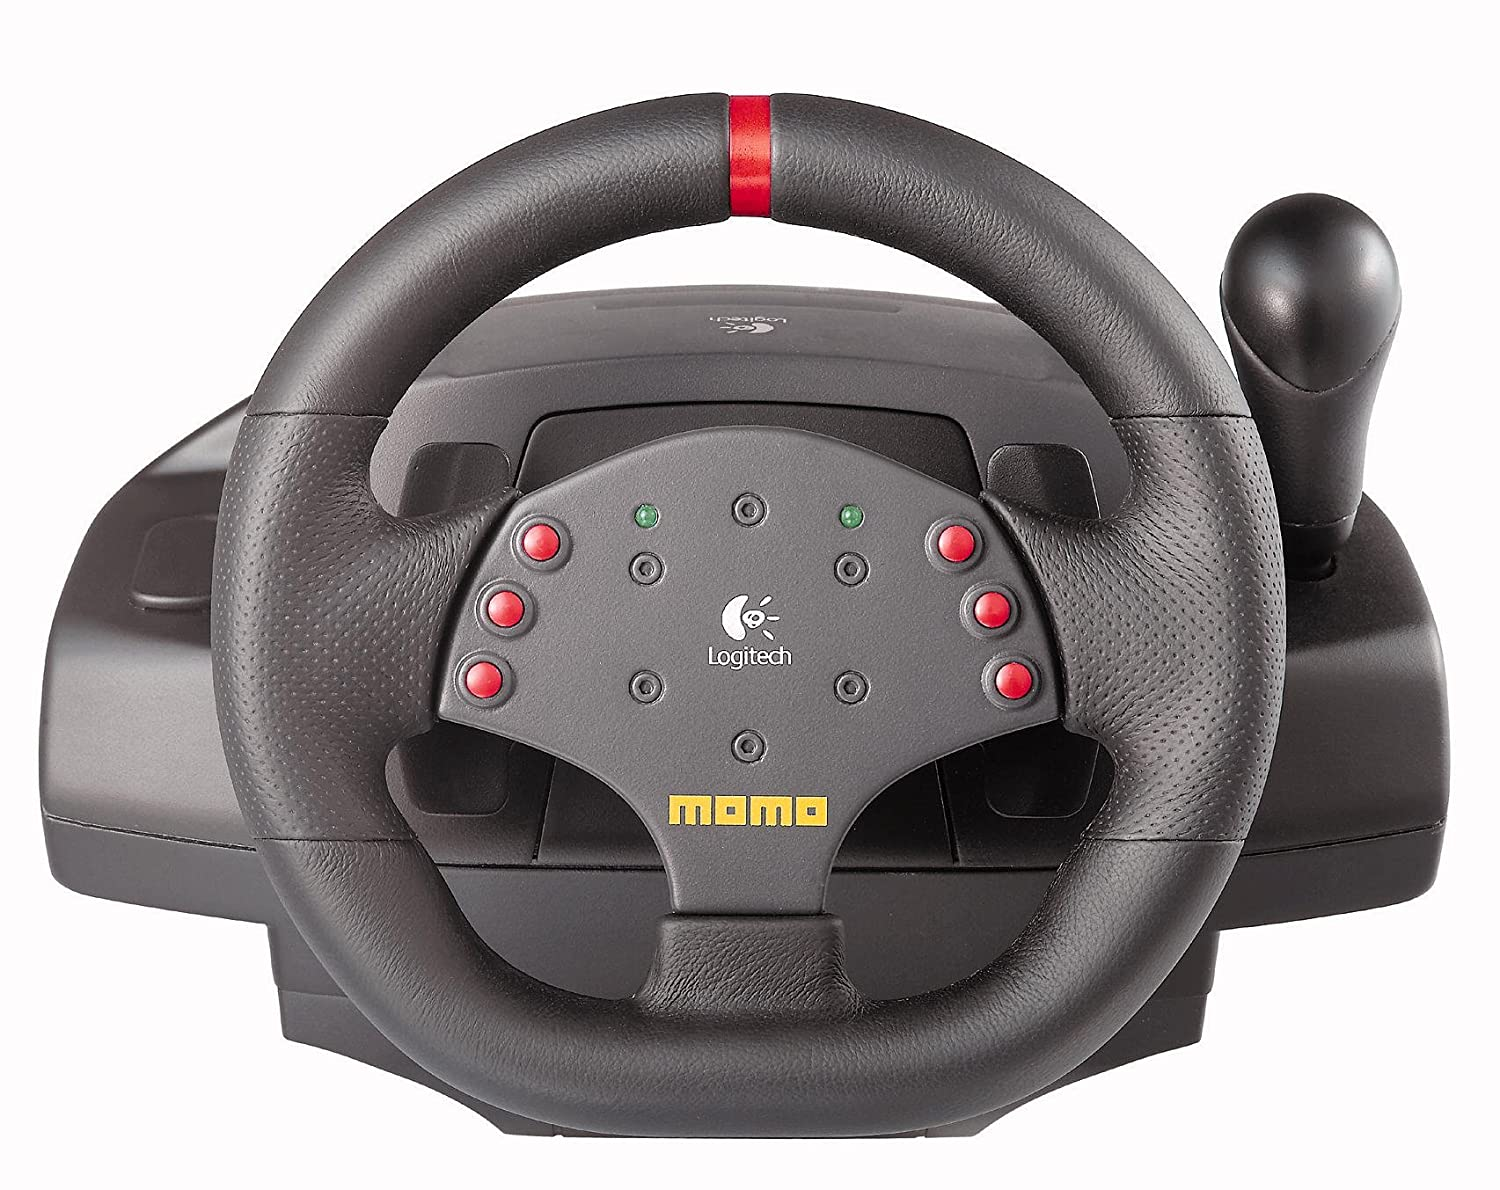 dc76fa41c60 Logitech Momo Racing Force PC Steering Wheel USB Refresh Packaging:  Amazon.co.uk: Computers & Accessories